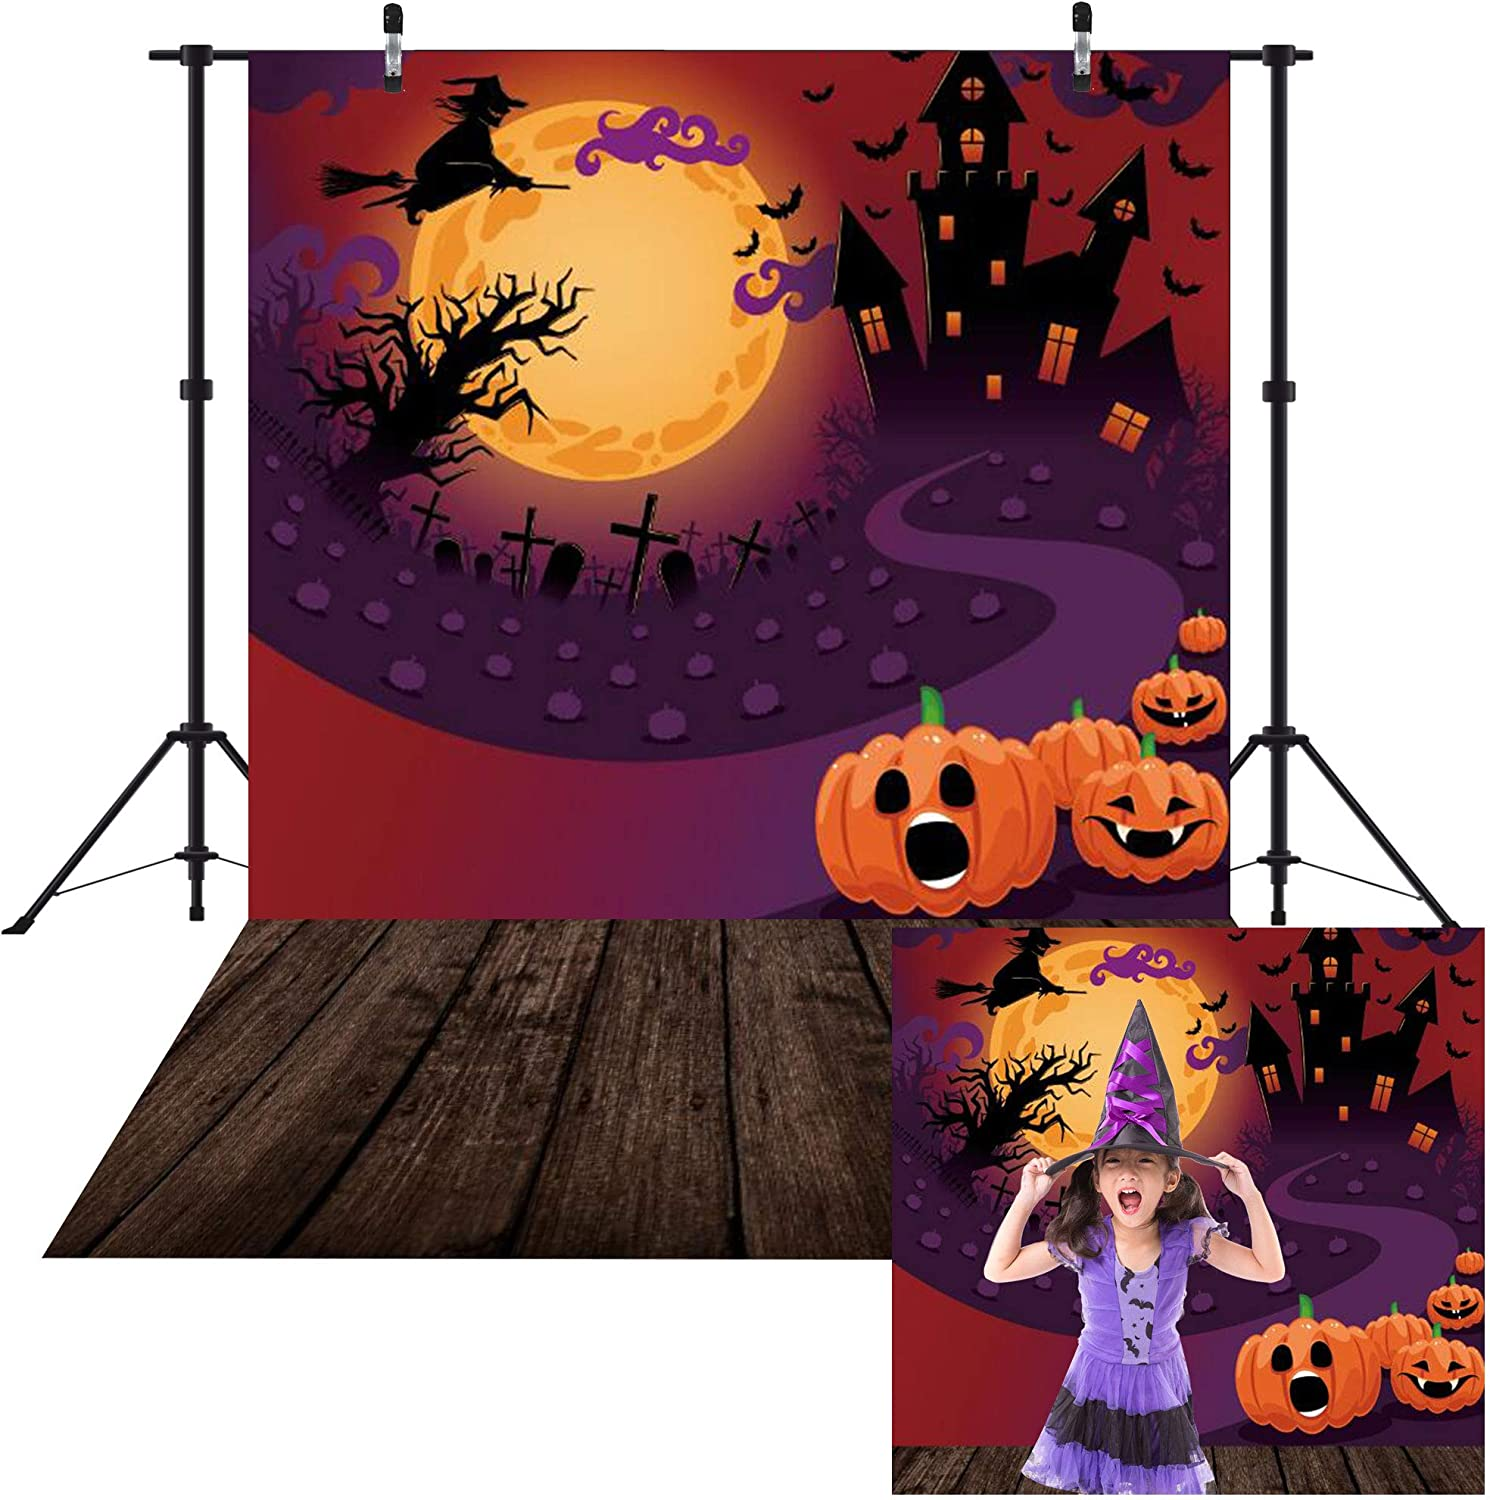 Haboke 5x7ft Durable/Soft Fabric Halloween Decorations Decor Backdrop for Photography Pumpkin Castle Witch and Bat Horrible Party for Kids Photo Background Photo Studio Booth Props